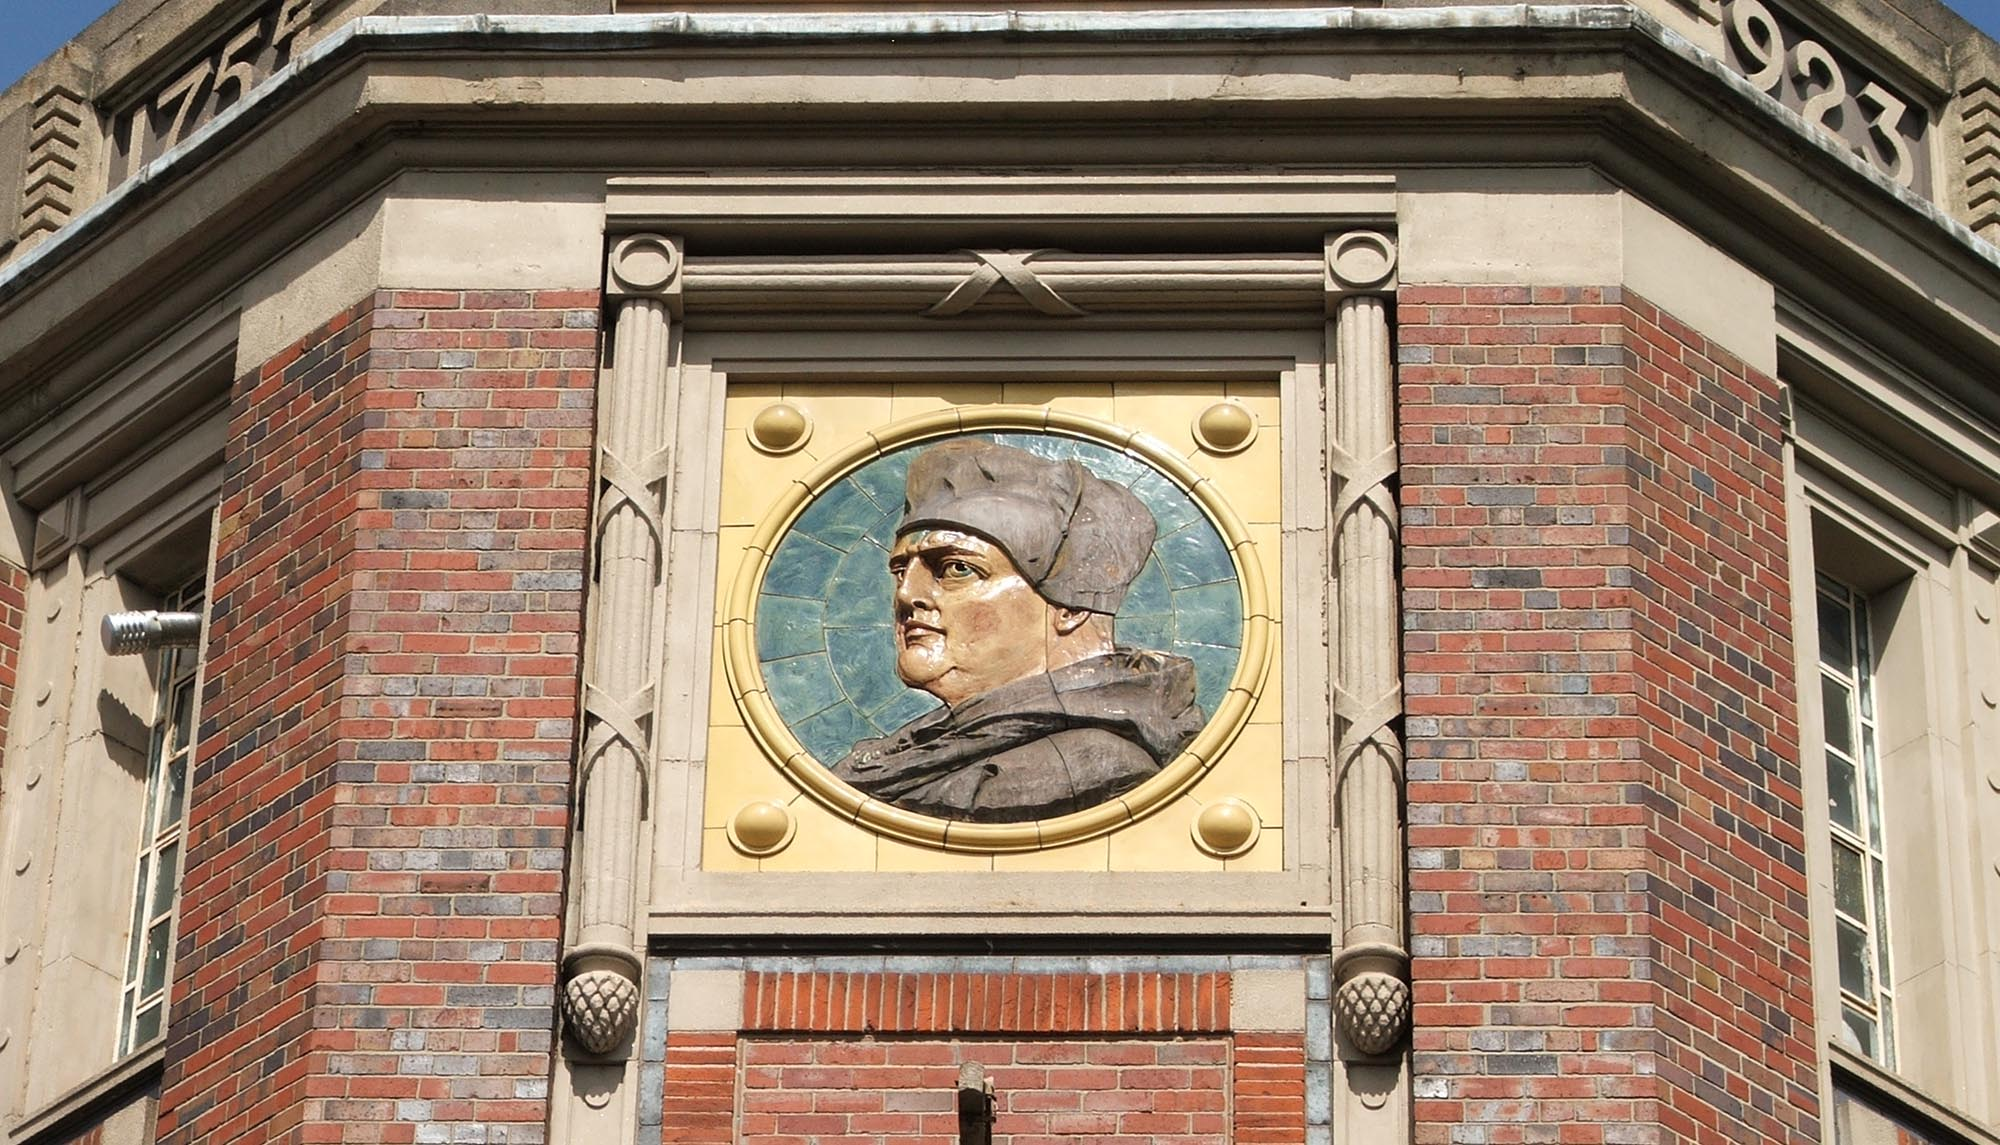 A large portrait of Cardinal Wolsey on the former Wolsey Knitwear Factory near to Abbey Park, built in 1923 -